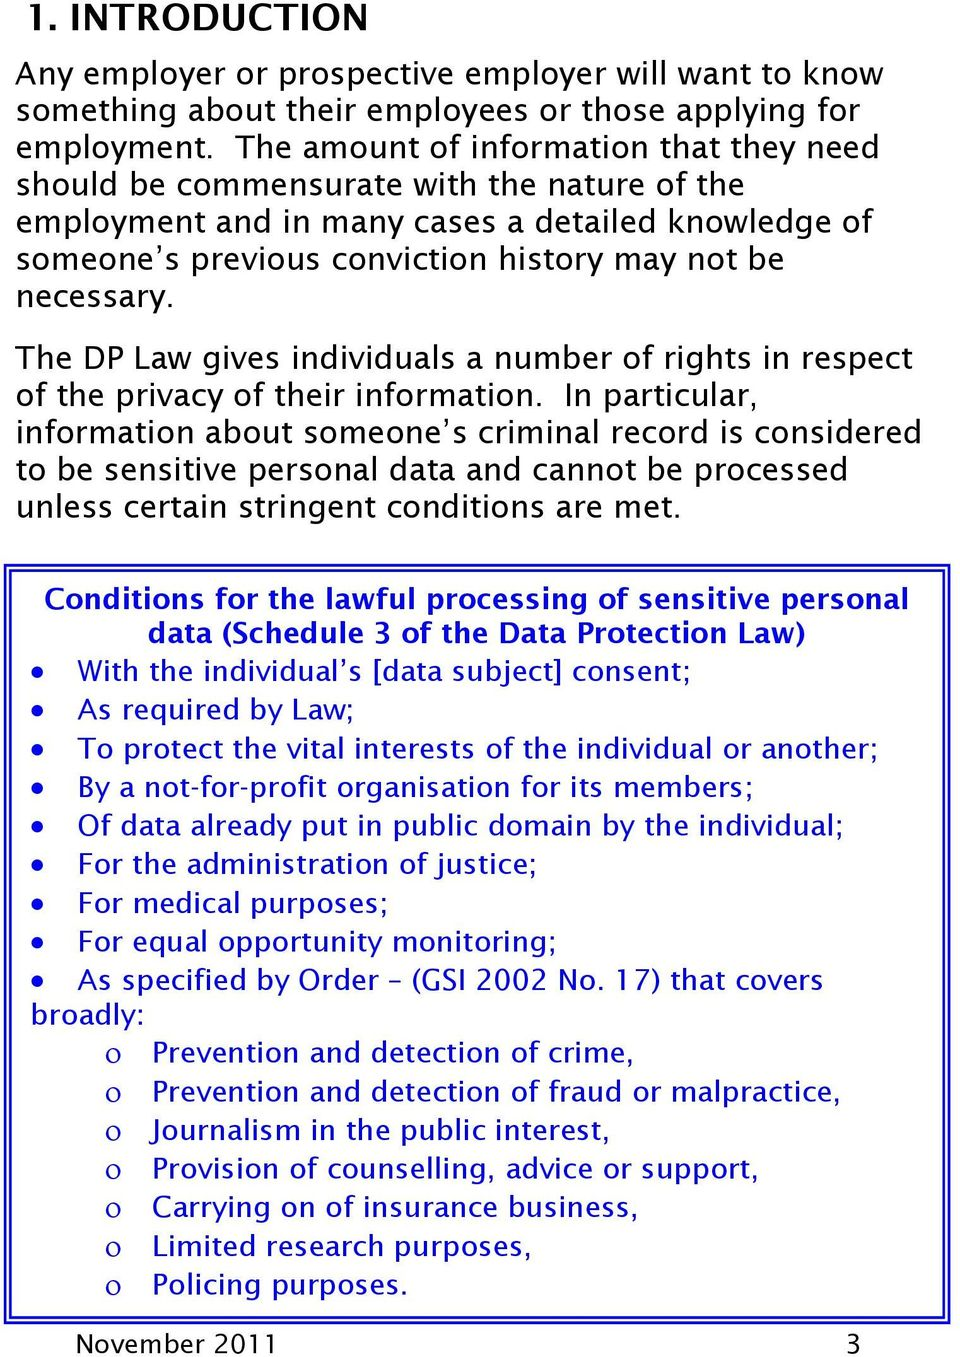 The DP Law gives individuals a number of rights in respect of the privacy of their information.